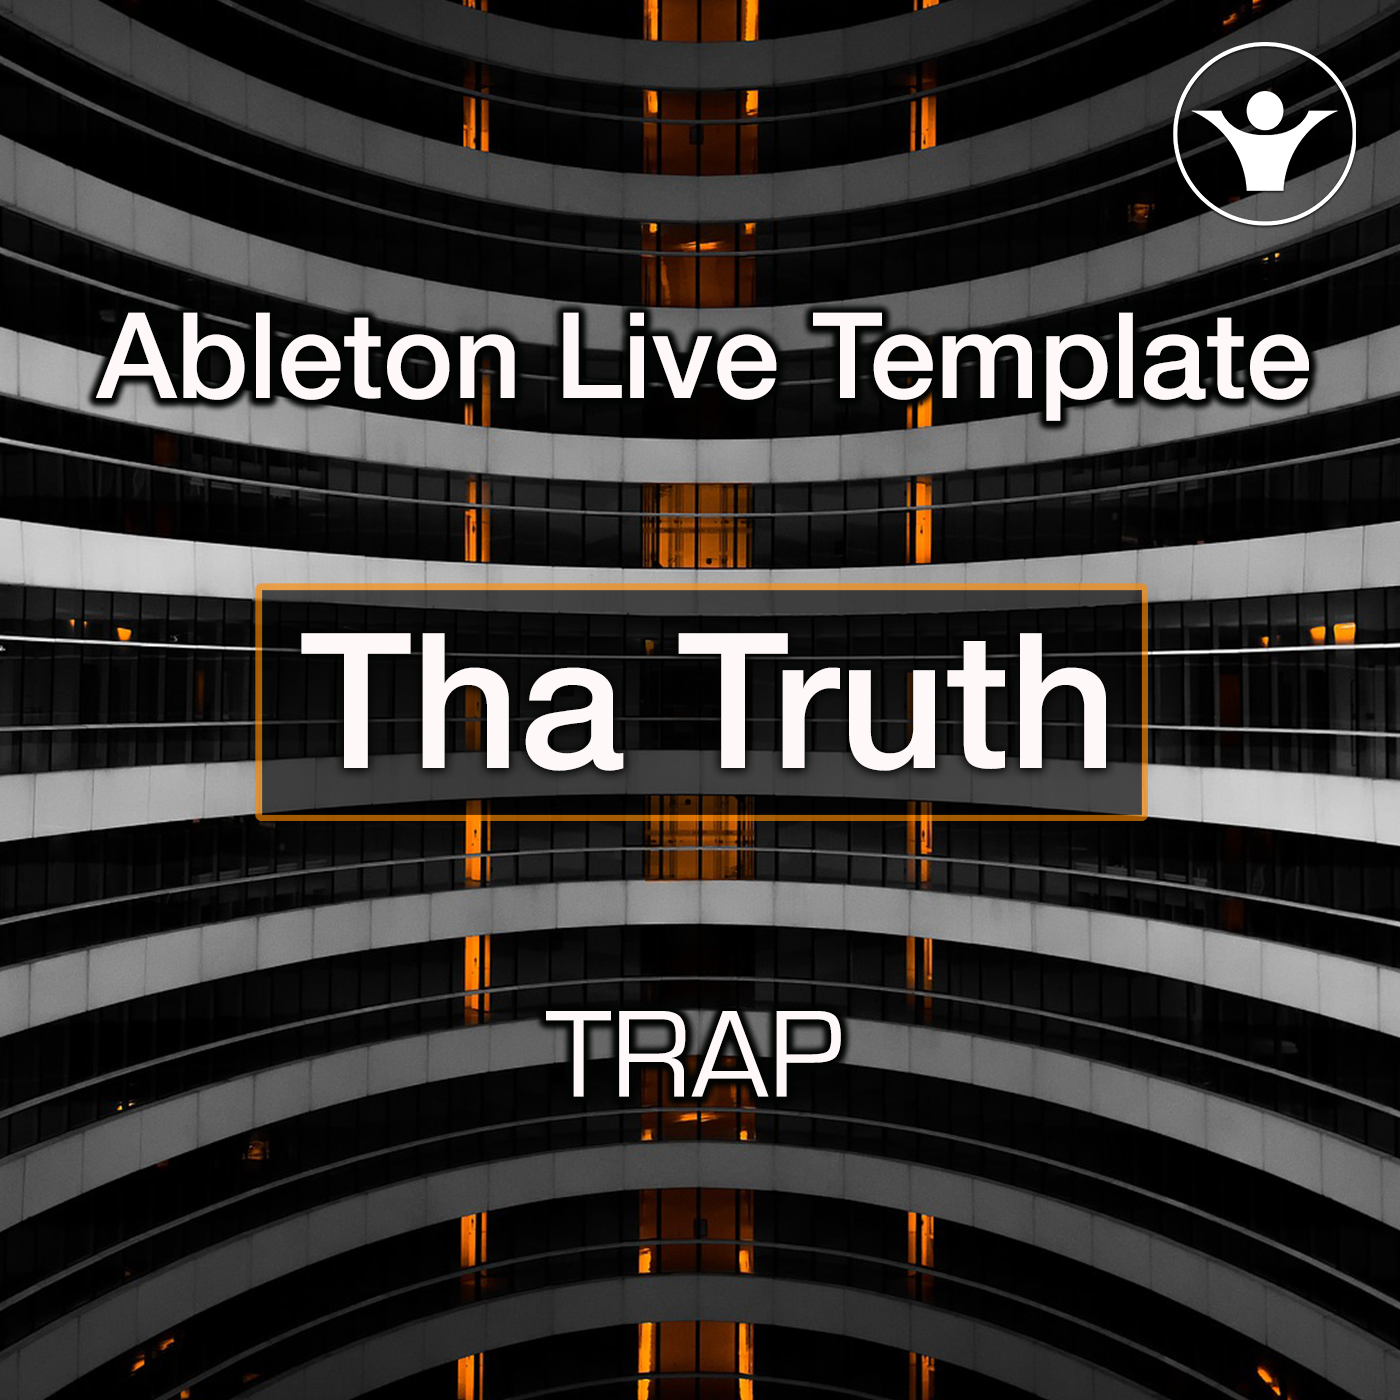 Features Best Trap And Dubstep Templates Ableton Live From Ableton